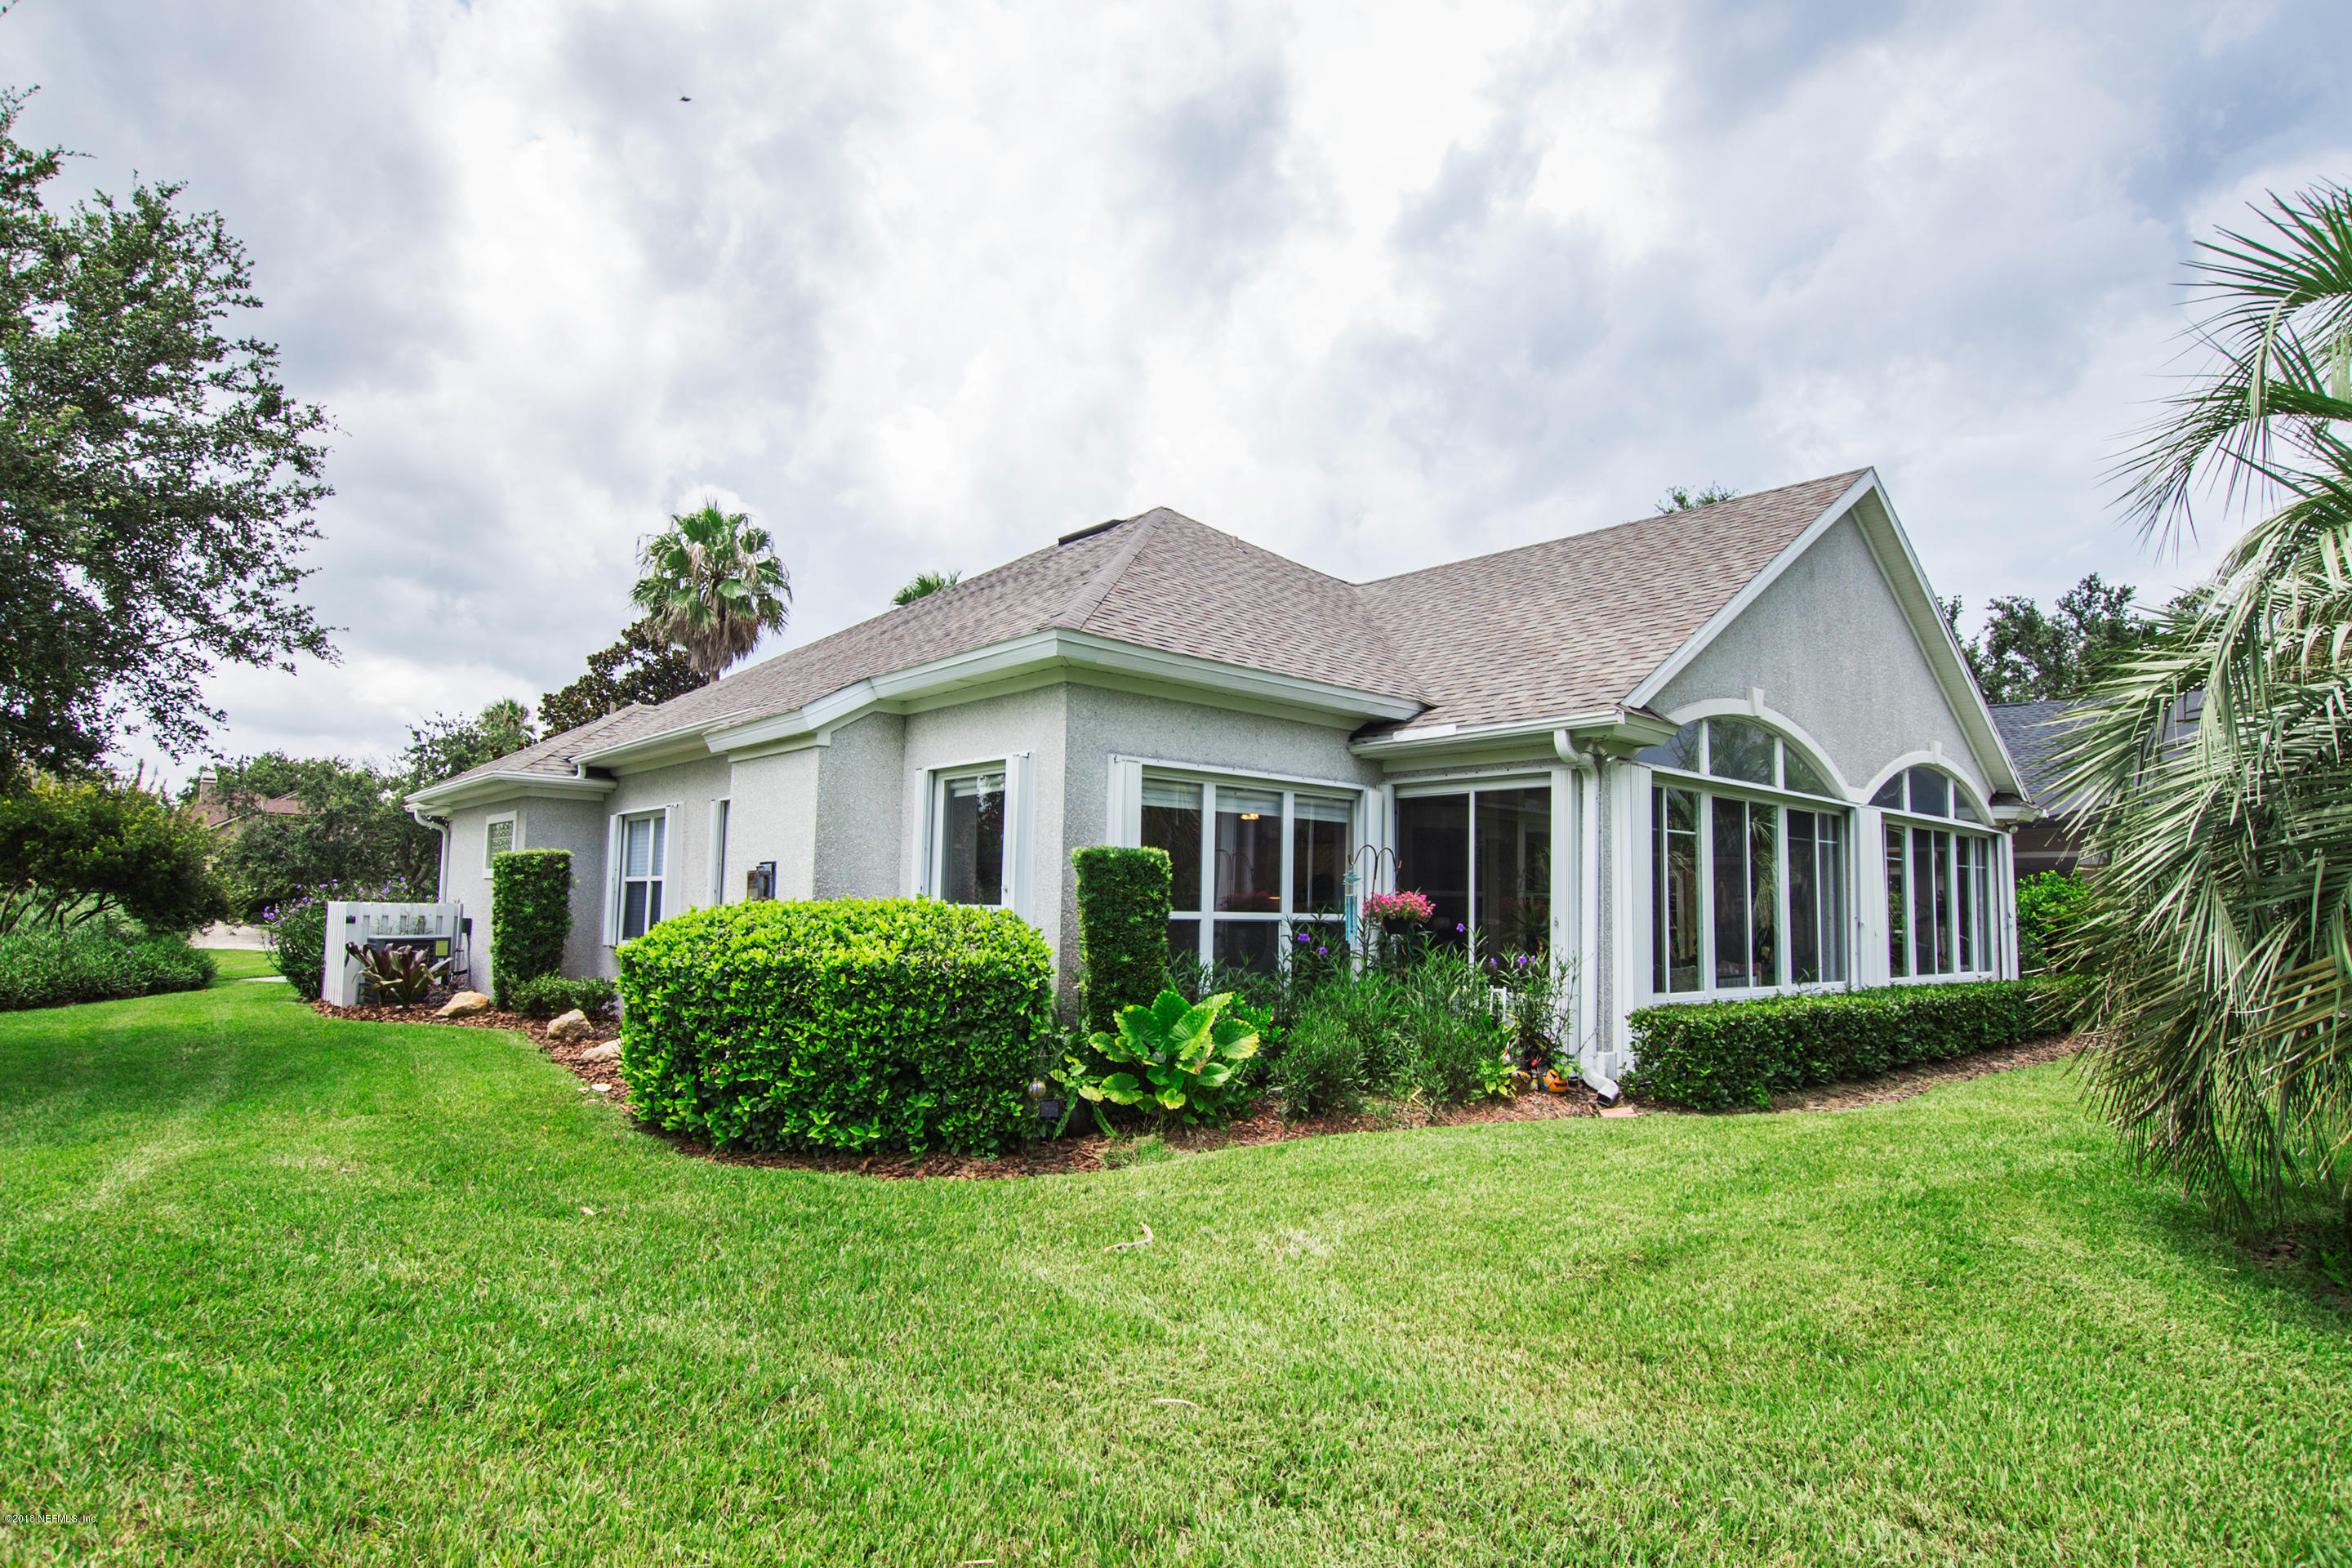 400 MISTY MORNING, ST AUGUSTINE, FLORIDA 32080, 3 Bedrooms Bedrooms, ,2 BathroomsBathrooms,Residential - single family,For sale,MISTY MORNING,949049